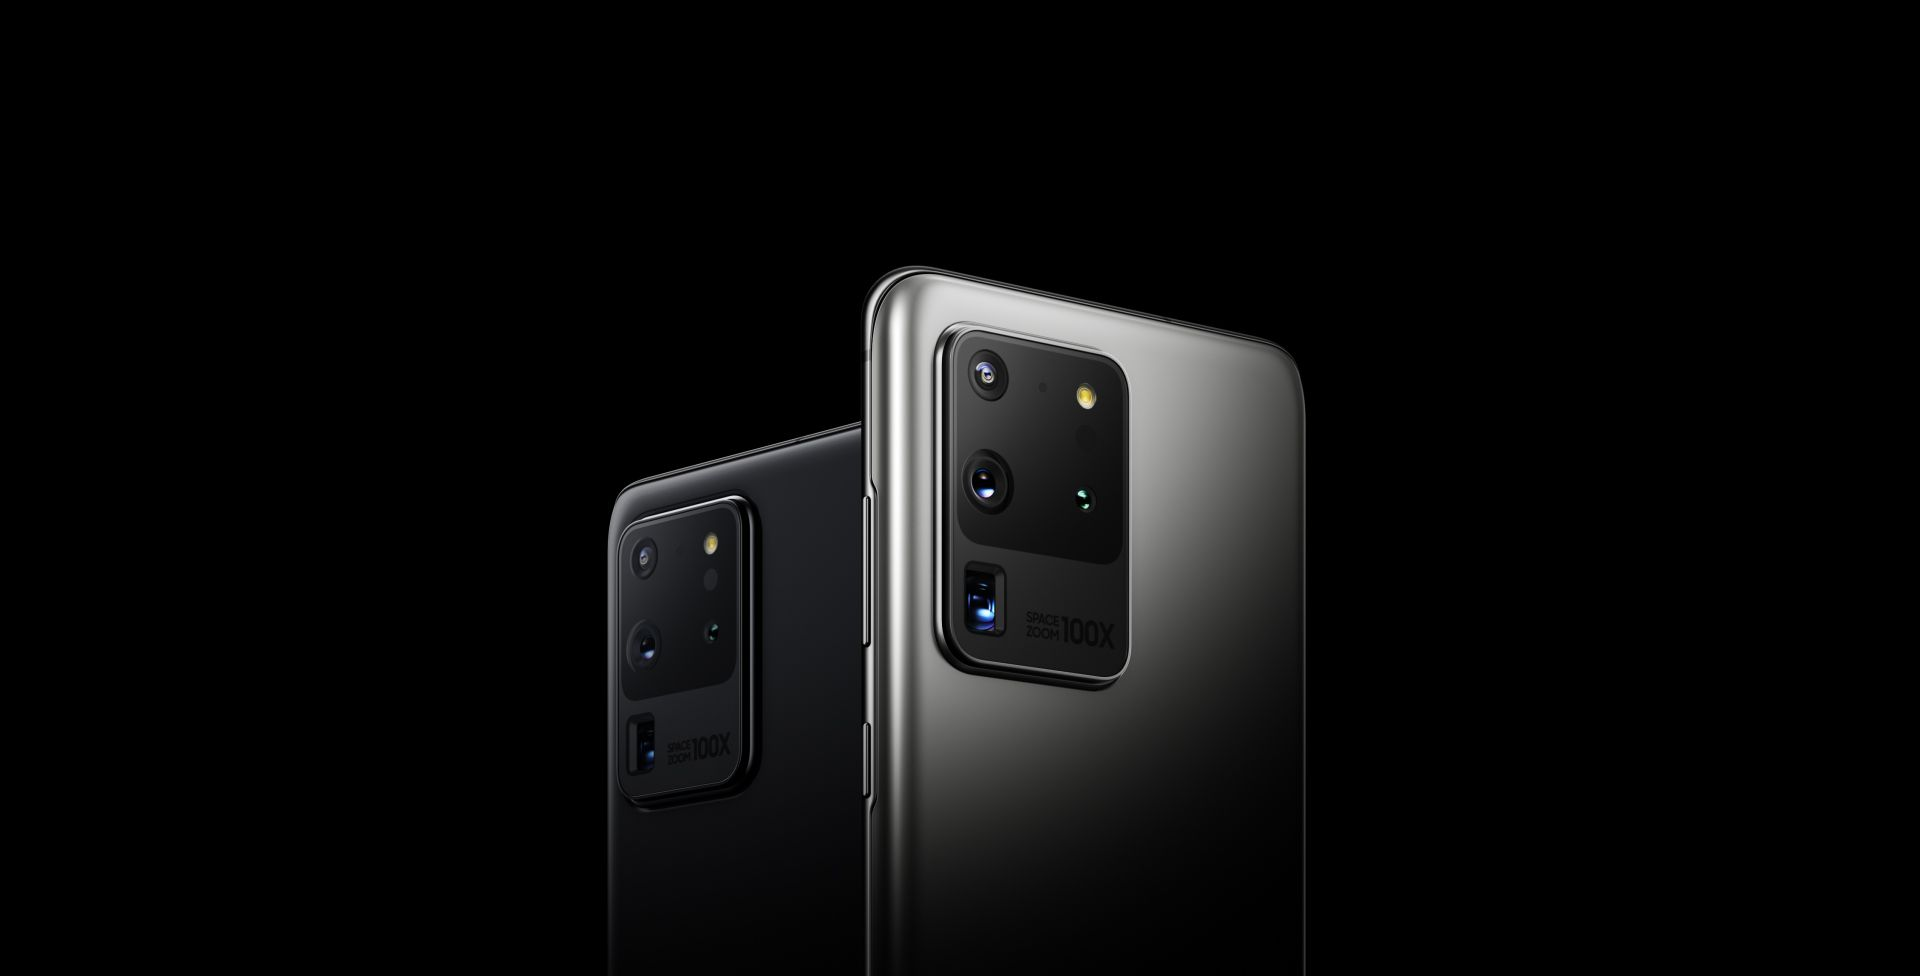 Samsung Galaxy S20+ Update Brings Improved Camera Performance